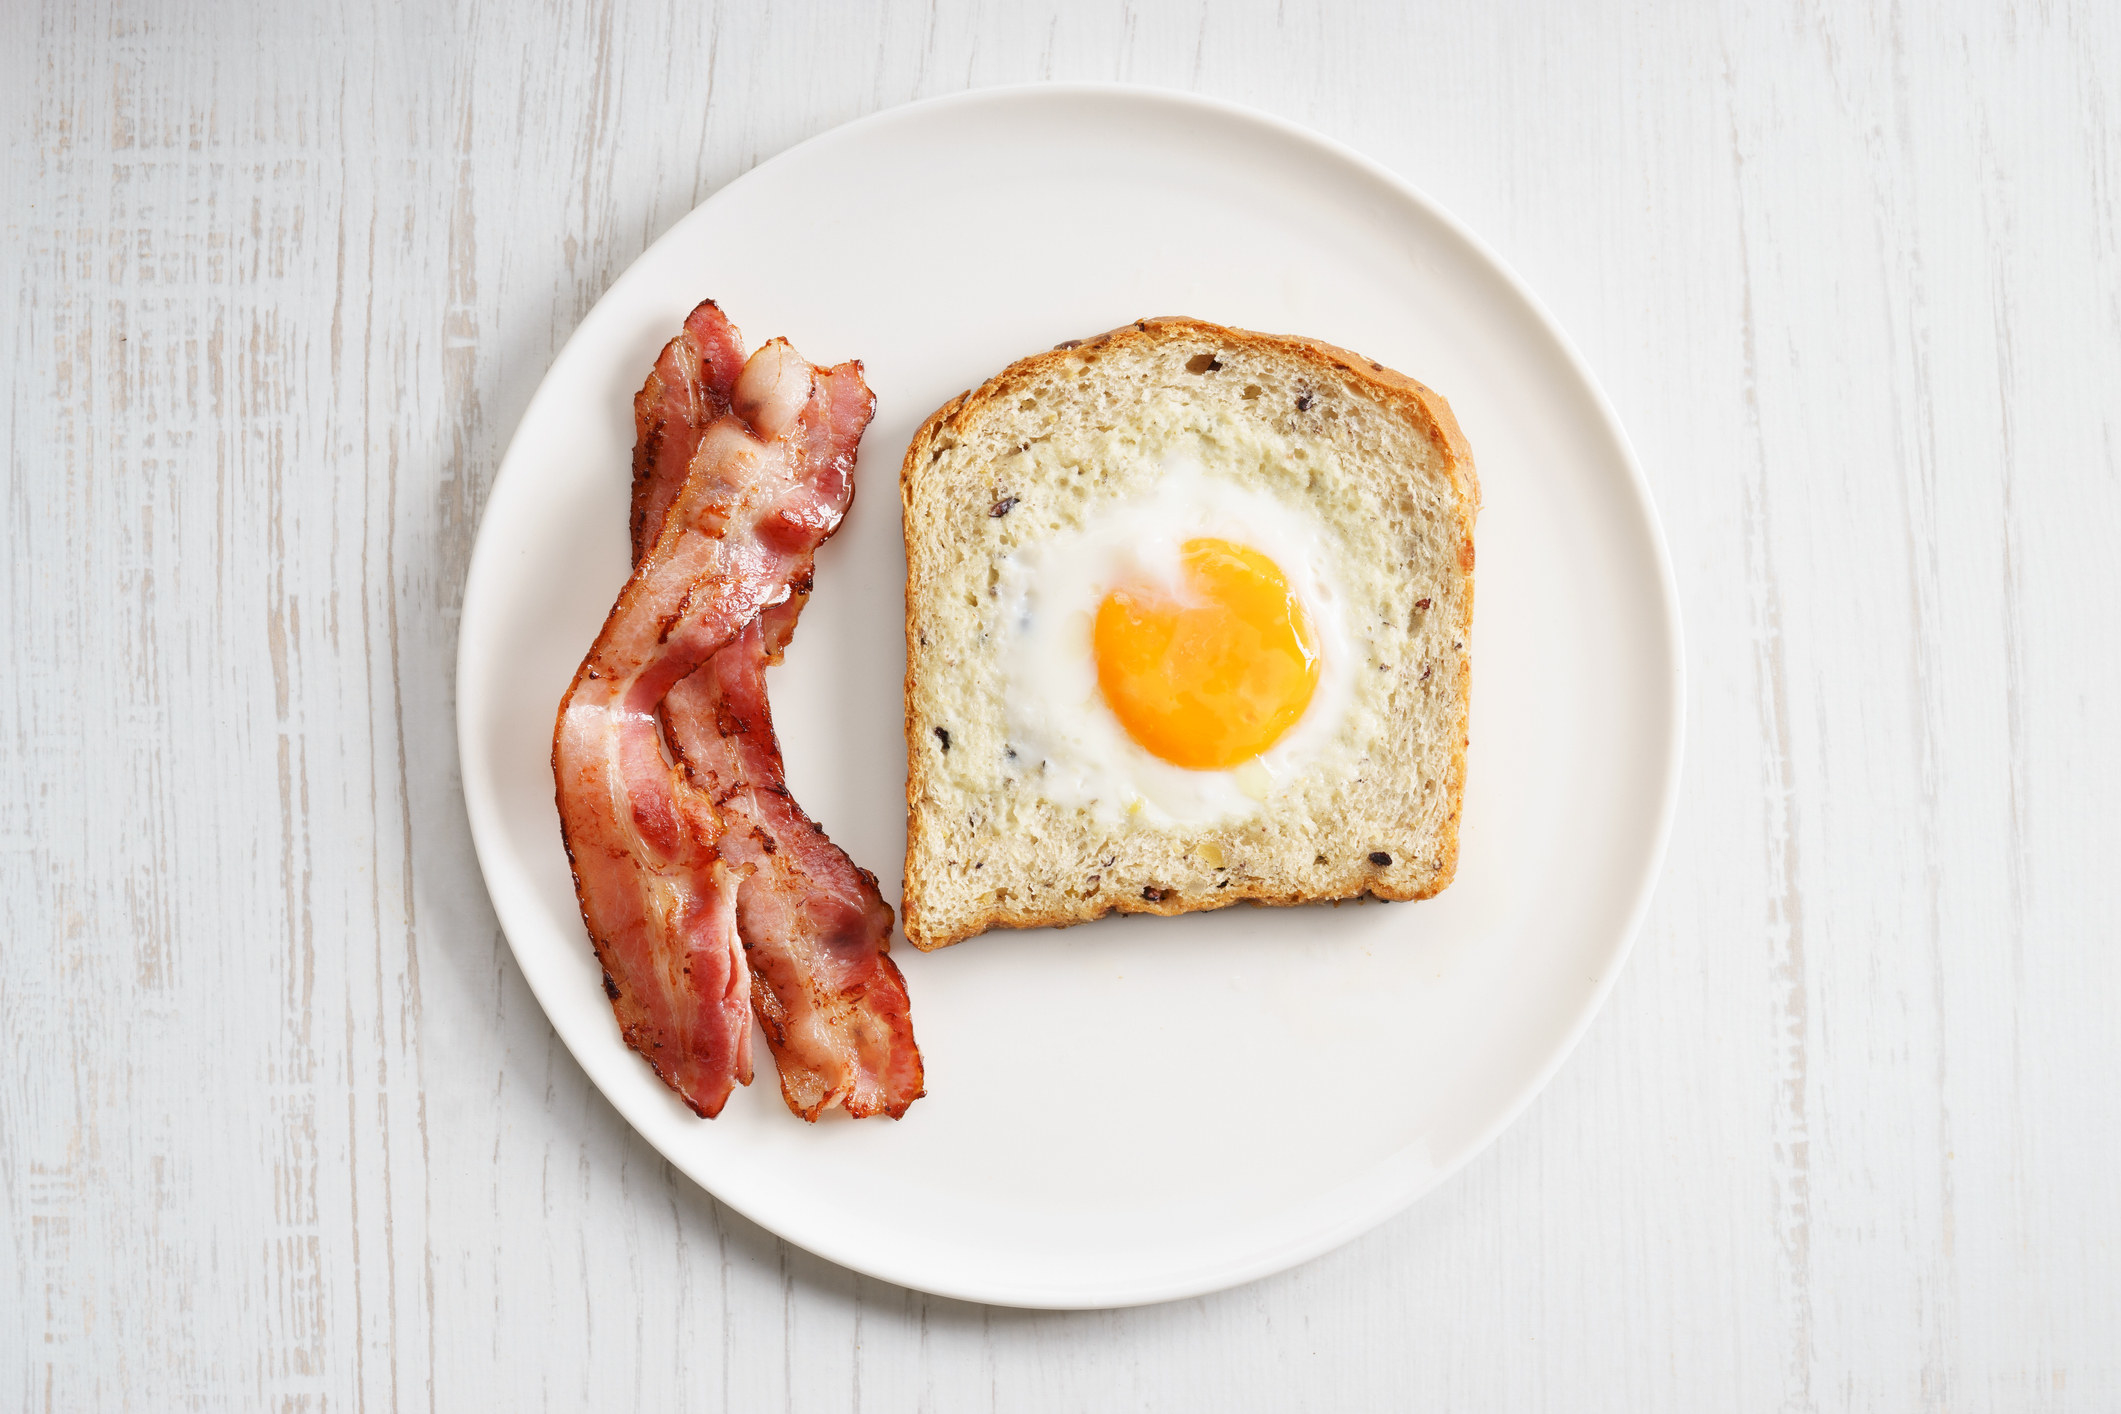 An egg baked in a slice of toast with two pieces of bacon on the side.